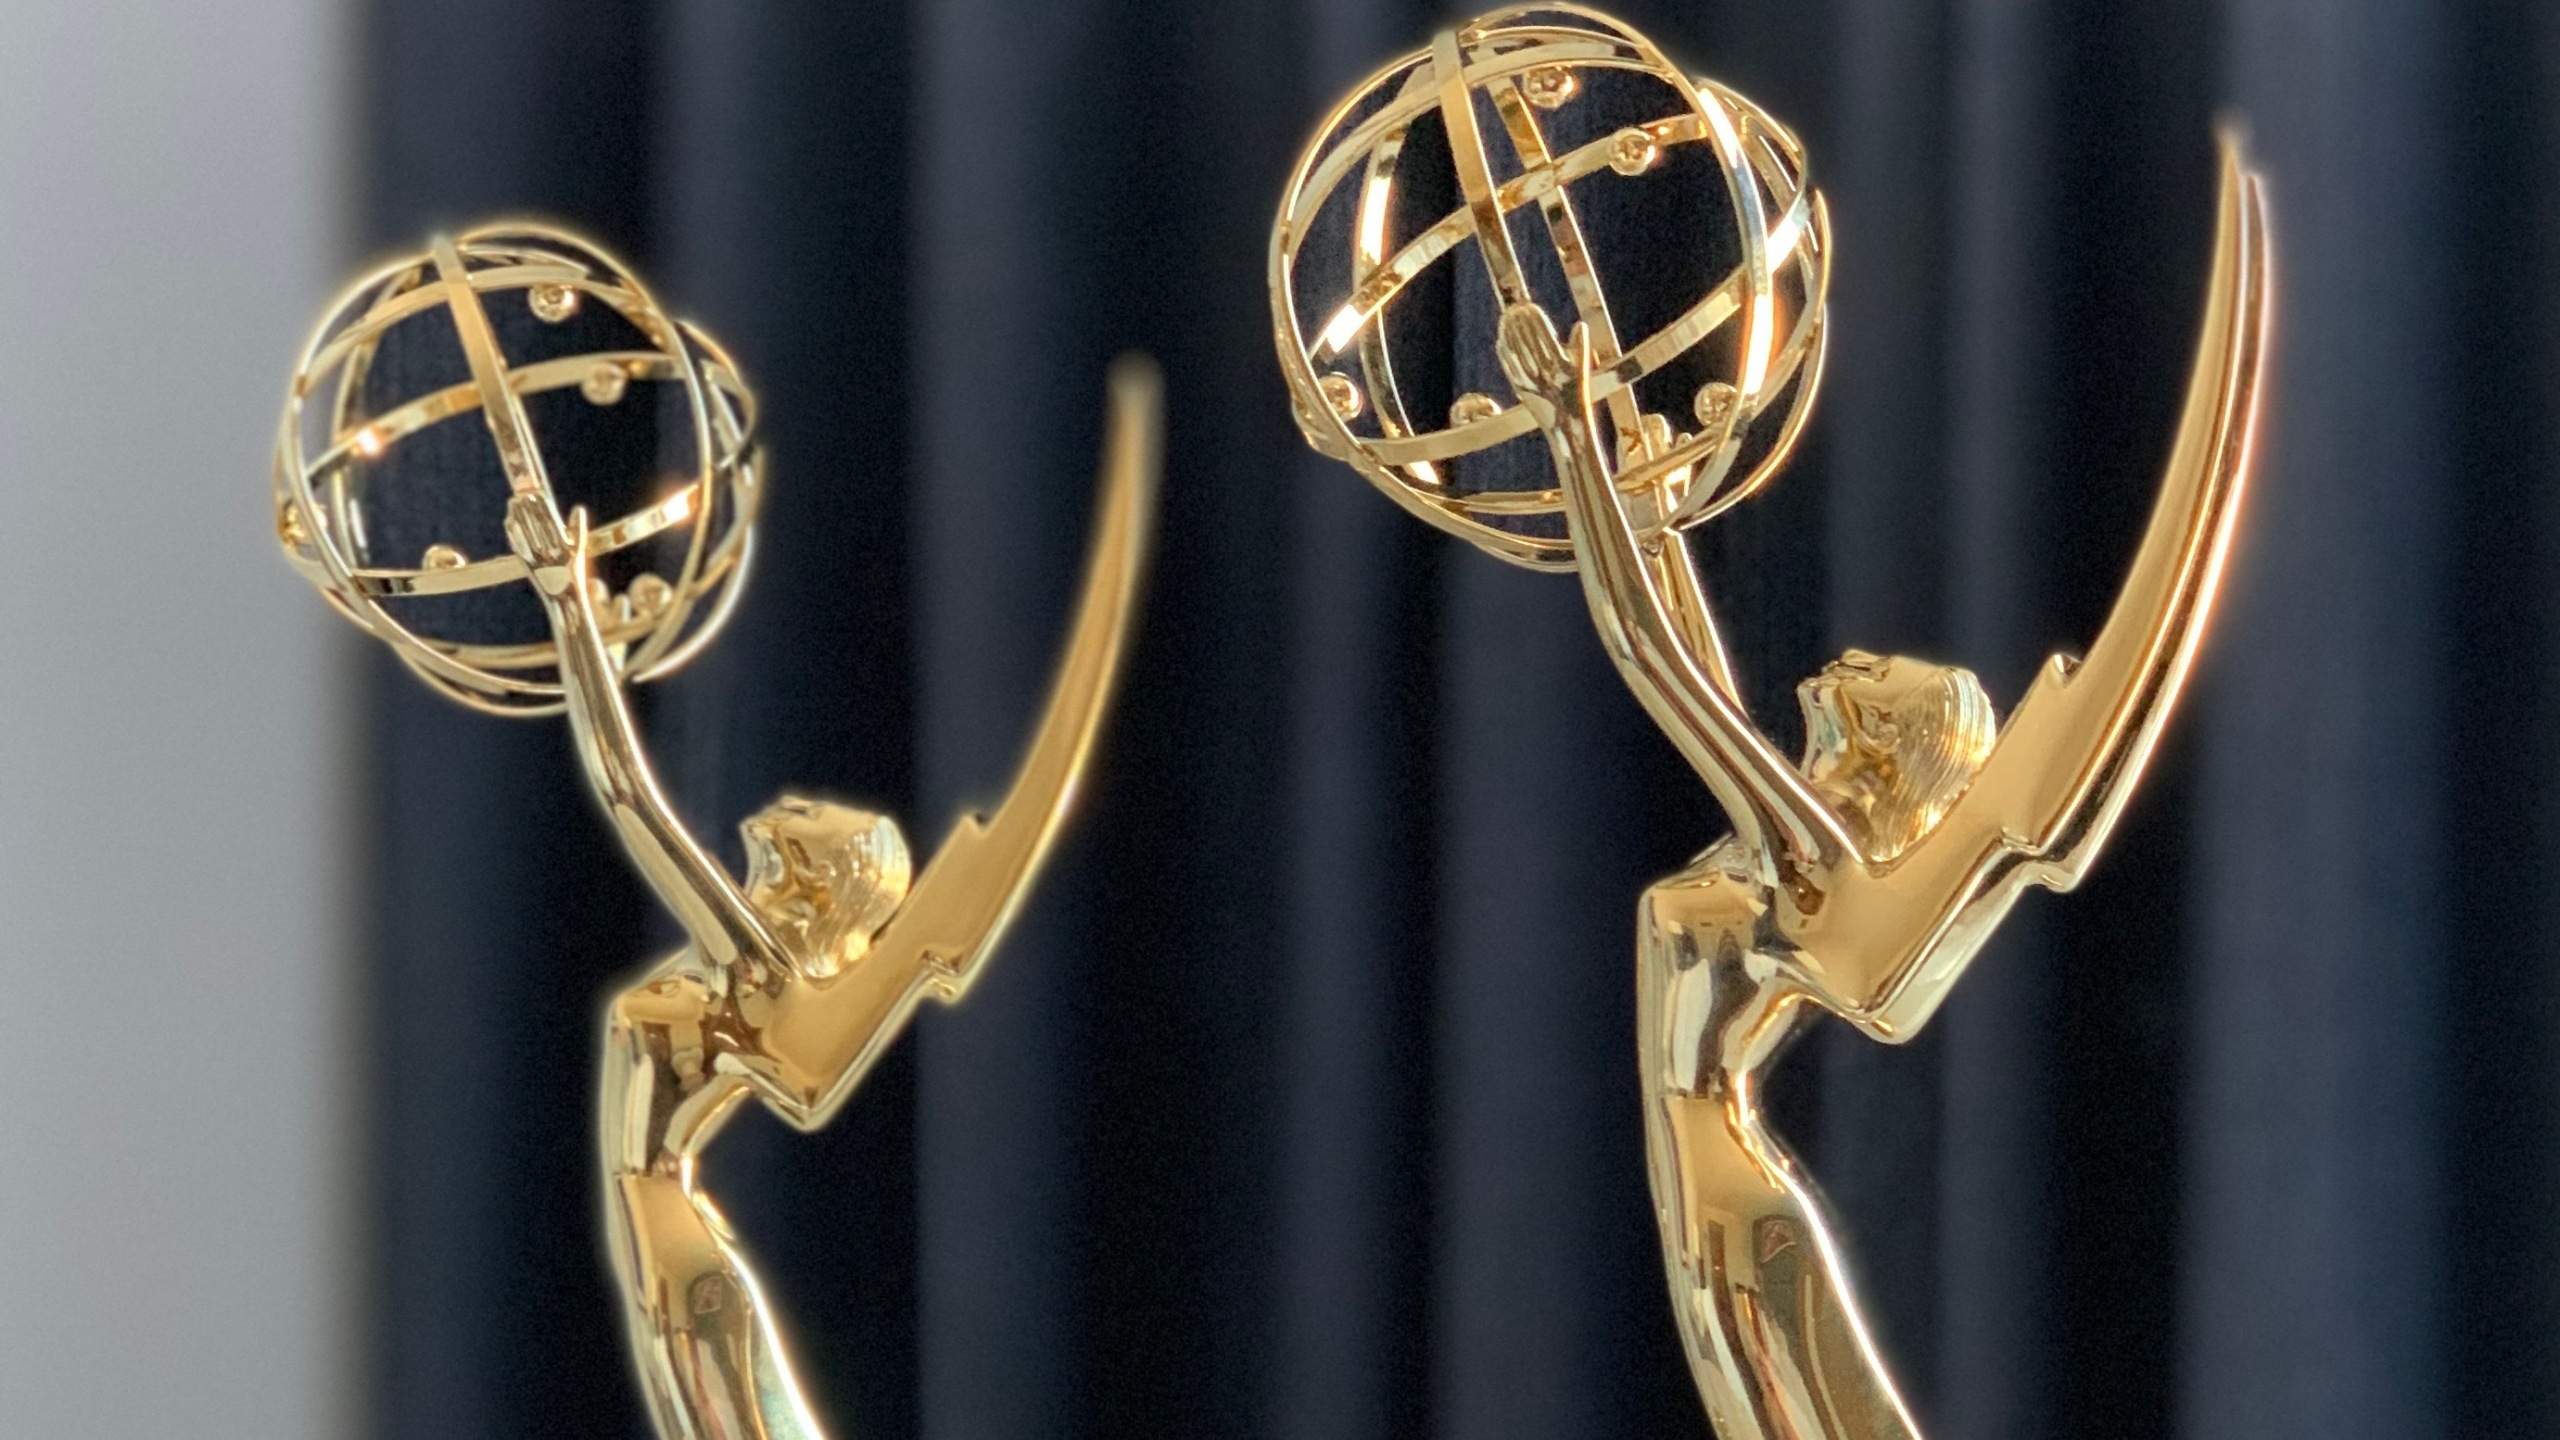 Lone Star Emmy Award (KXAN Photo)